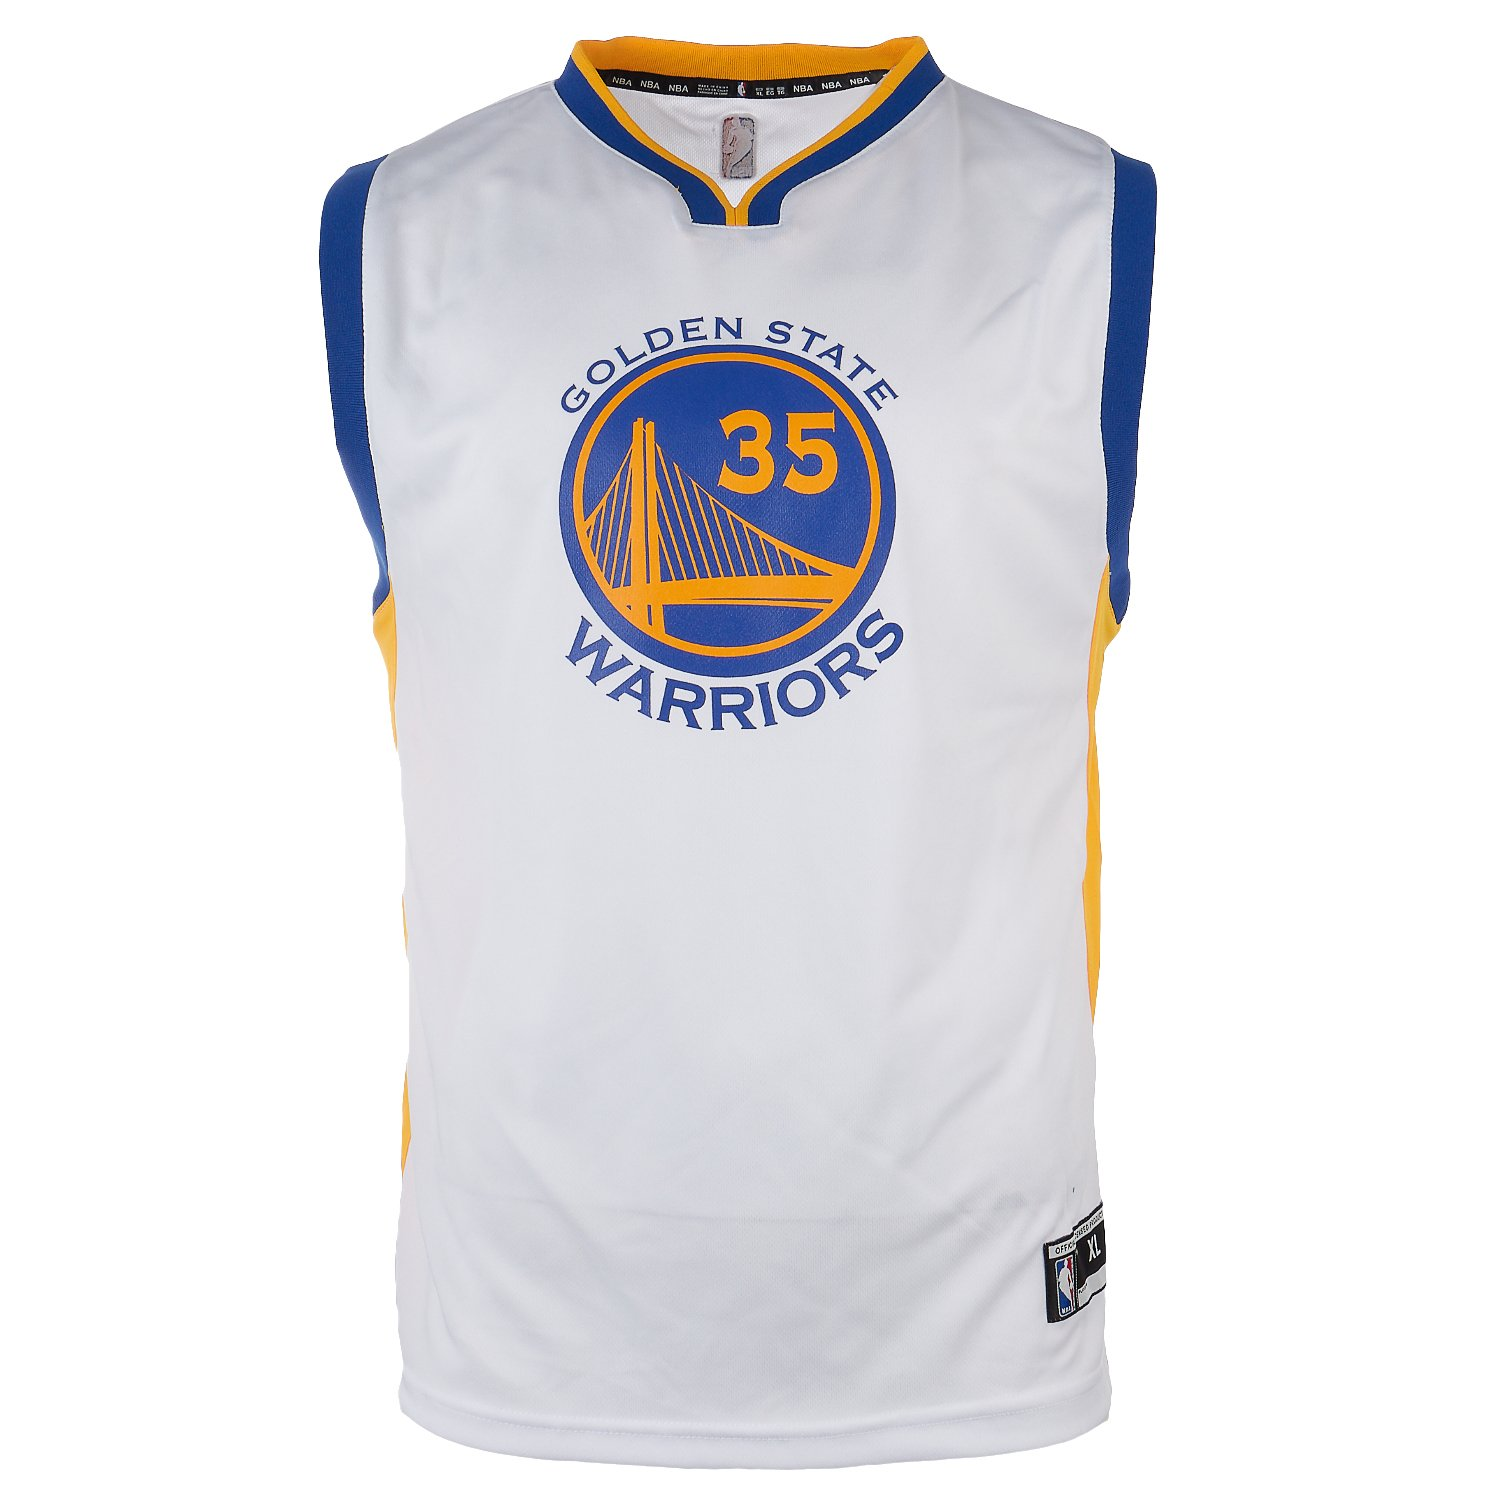 NBA by Outerstuff SHIRT メンズ B076M6ZQ9Y Medium 10-12